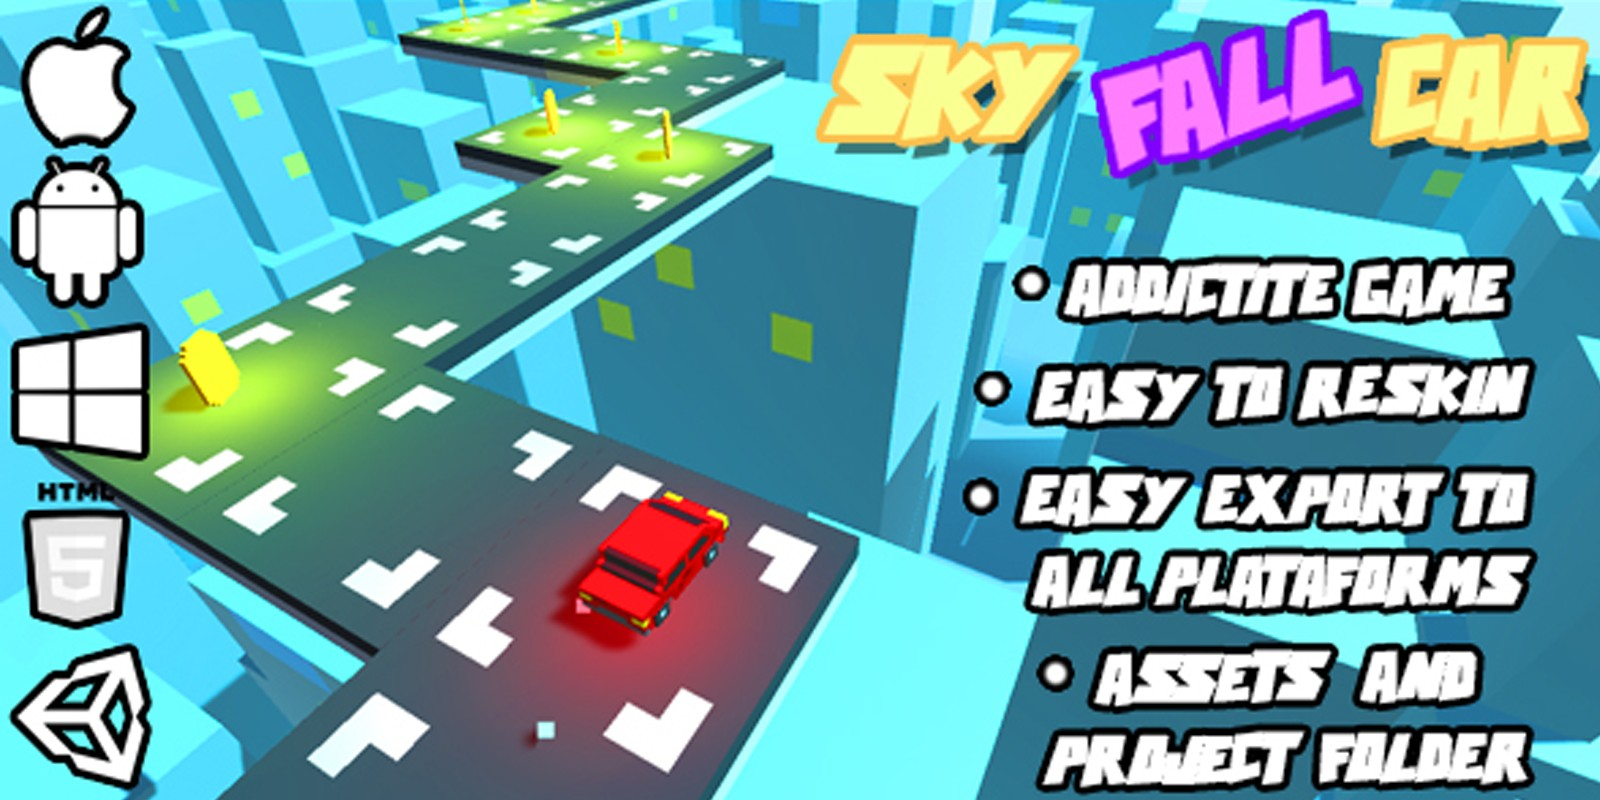 Sky Fall Car - Unity Project And Assets